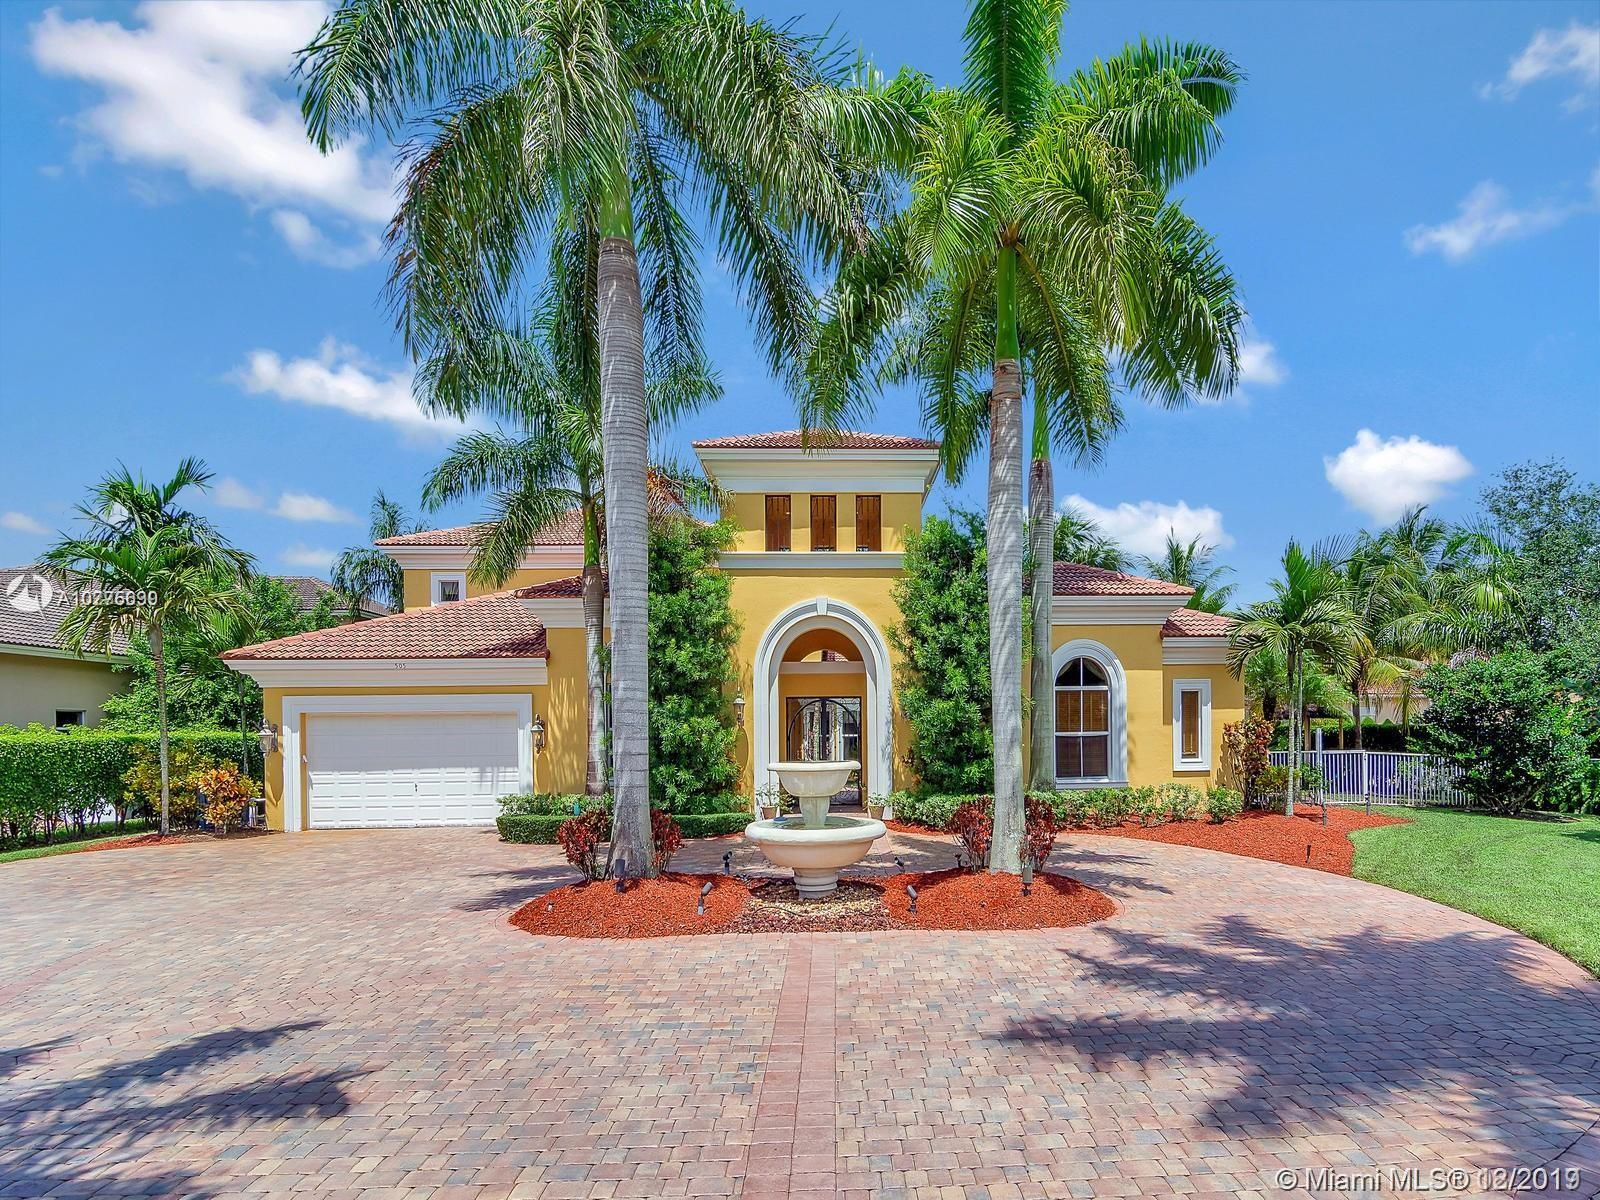 LOCATED IN THE EXCLUSIVE DOUBLE GATED SECTION OF THE ENCLAVE OF GRAND PALMS, THIS OPULENT ENTERTAINERS DREAM HOME FEATURES SOARING CEILINGS, DRAMATIC IRON STAIRCASE, EXQUISITE MARBLE FLOORS & IMPACT WINDOWS & DOORS. CUSTOM DESIGNED KITCHEN HAS LARGE ISLAND, HIGH END STAINLESS APPLIANCES & BREAKFAST NOOK OVERLOOKING THE TRANQUIL COURTYARD & POOL. FIRST FLOOR MASTER SUITE WITH DUAL WALK IN CLOSETS & SPA LIKE BATHROOM, ELEGANT EXECUTIVE OFFICE & CUSTOM DESIGNED HOME THEATRE. UPSTAIRS HAS 3 LARGE BEDROOMS WITH PRIVATE ENSUITE BATHROOMS & MULTI-PURPOSE LOFT AREA. DINE AL FRESCO IN YOUR OUTDOOR KITCHEN & BAR SURROUNDED BY ITALIAN FOUNTAINS, WALKING PATHS, SPARKLING POOL & SPA, PLUS GUEST QUARTERS. CLOSE TO ALL MAJOR HWAYS, AIRPORTS, SHOPPING & DINING, THIS MASTERPIECE WILL TAKE YOUR BREATH AWAY.